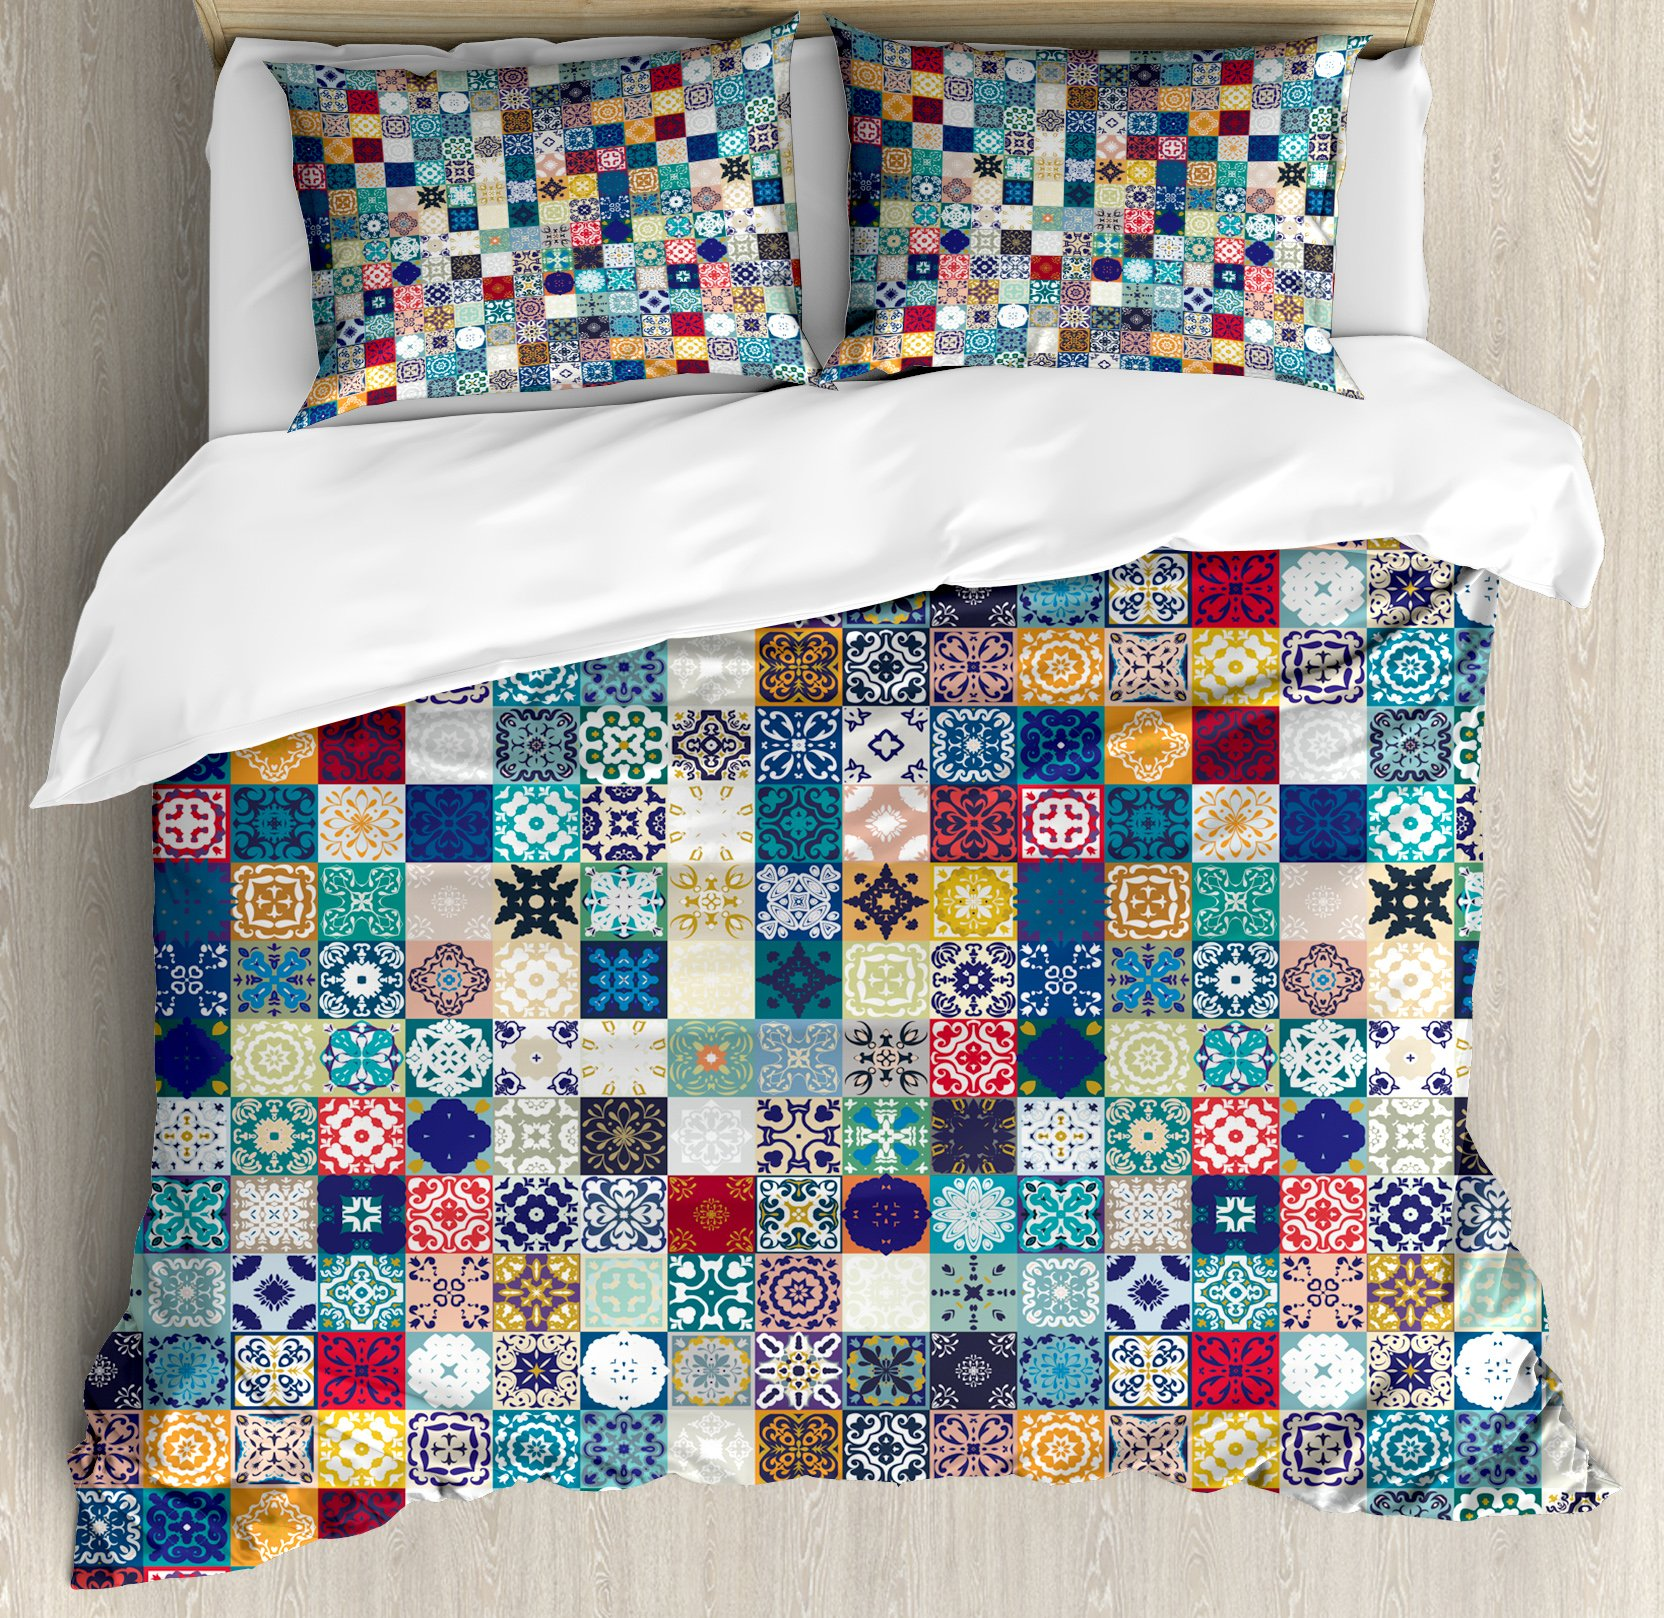 Moroccan King Size Duvet Cover Set by Ambesonne, Oriental Eastern Pattern with Grid Style Patchwork Ornament Tiles Design Asian, Decorative 3 Piece Bedding Set with 2 Pillow Shams, Multicolor